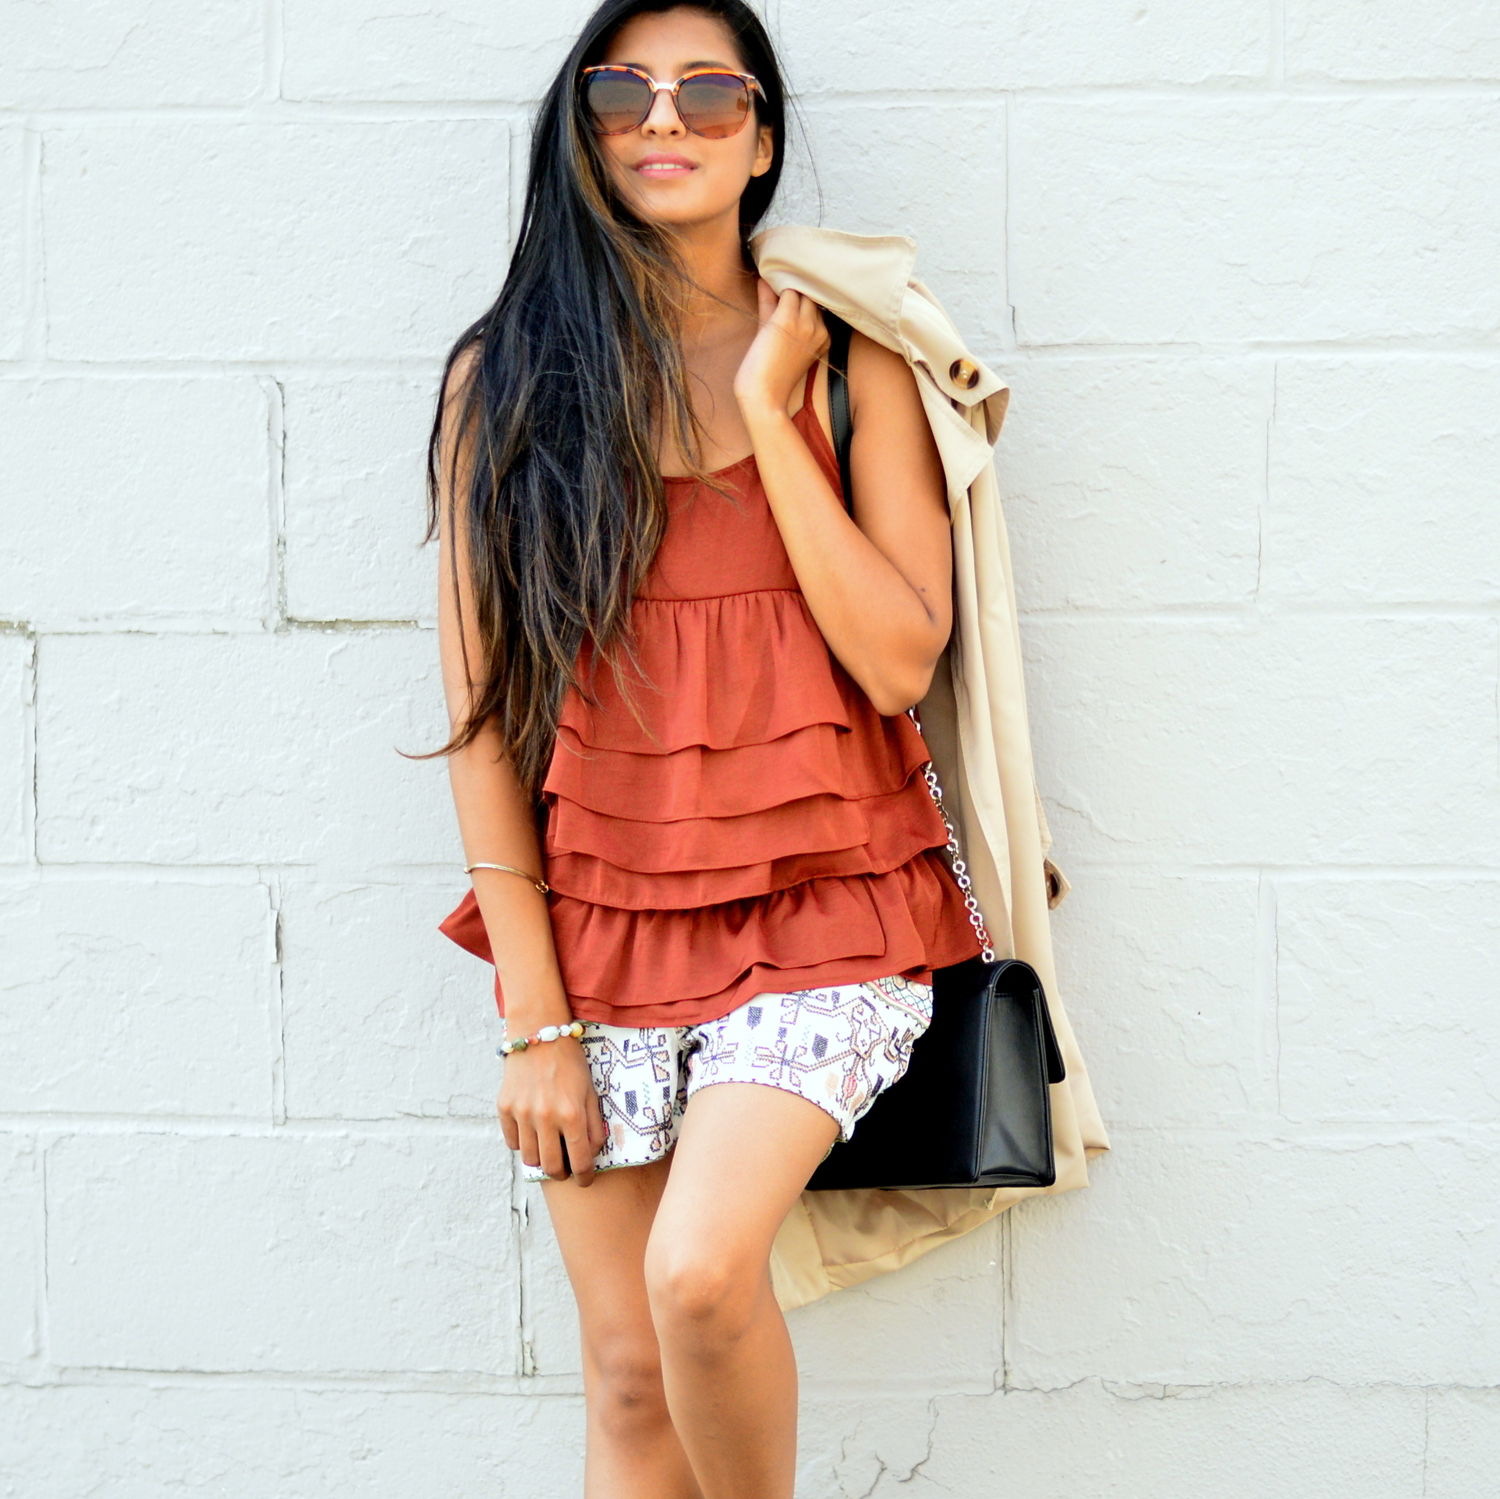 ruffles-embroidered-shorts-summer-style-fall-trends-blogger-outfit 2